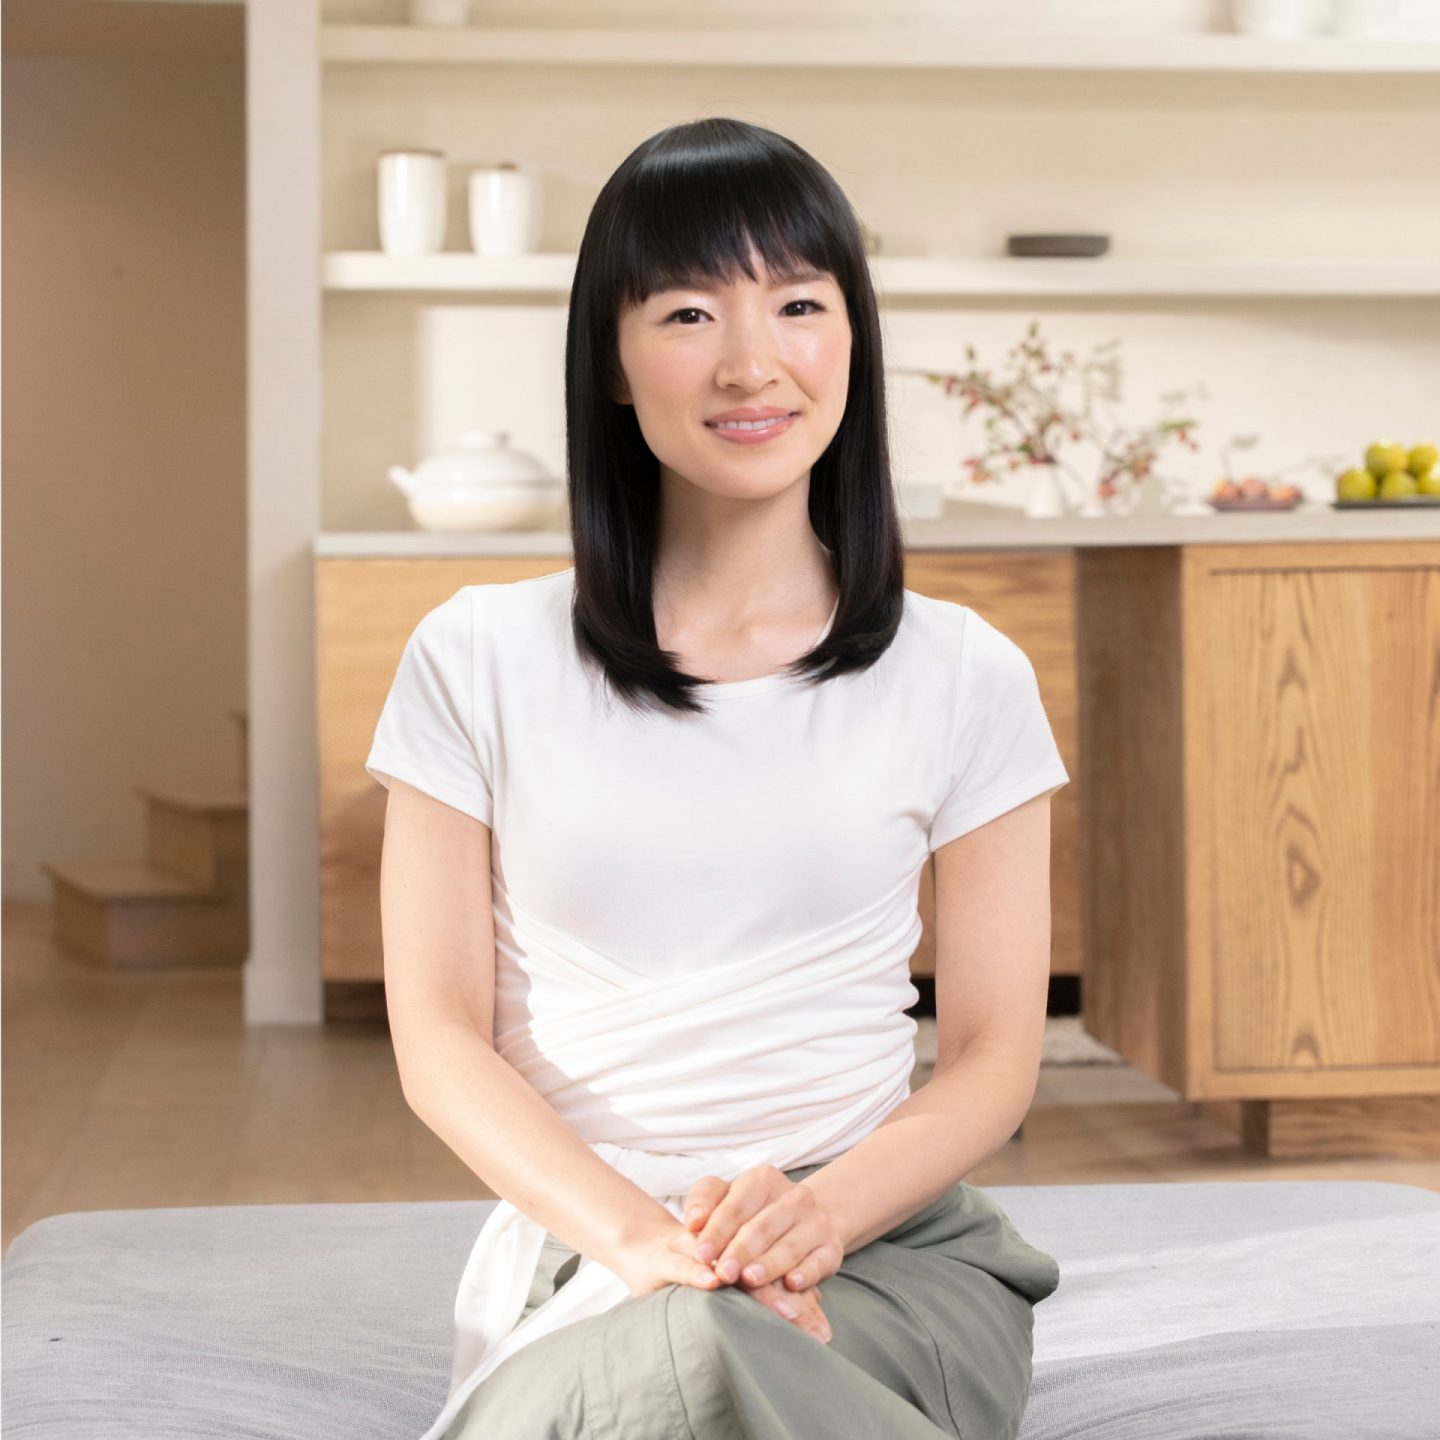 The Container Store to Launch Exclusive Product Line With Marie Kondo